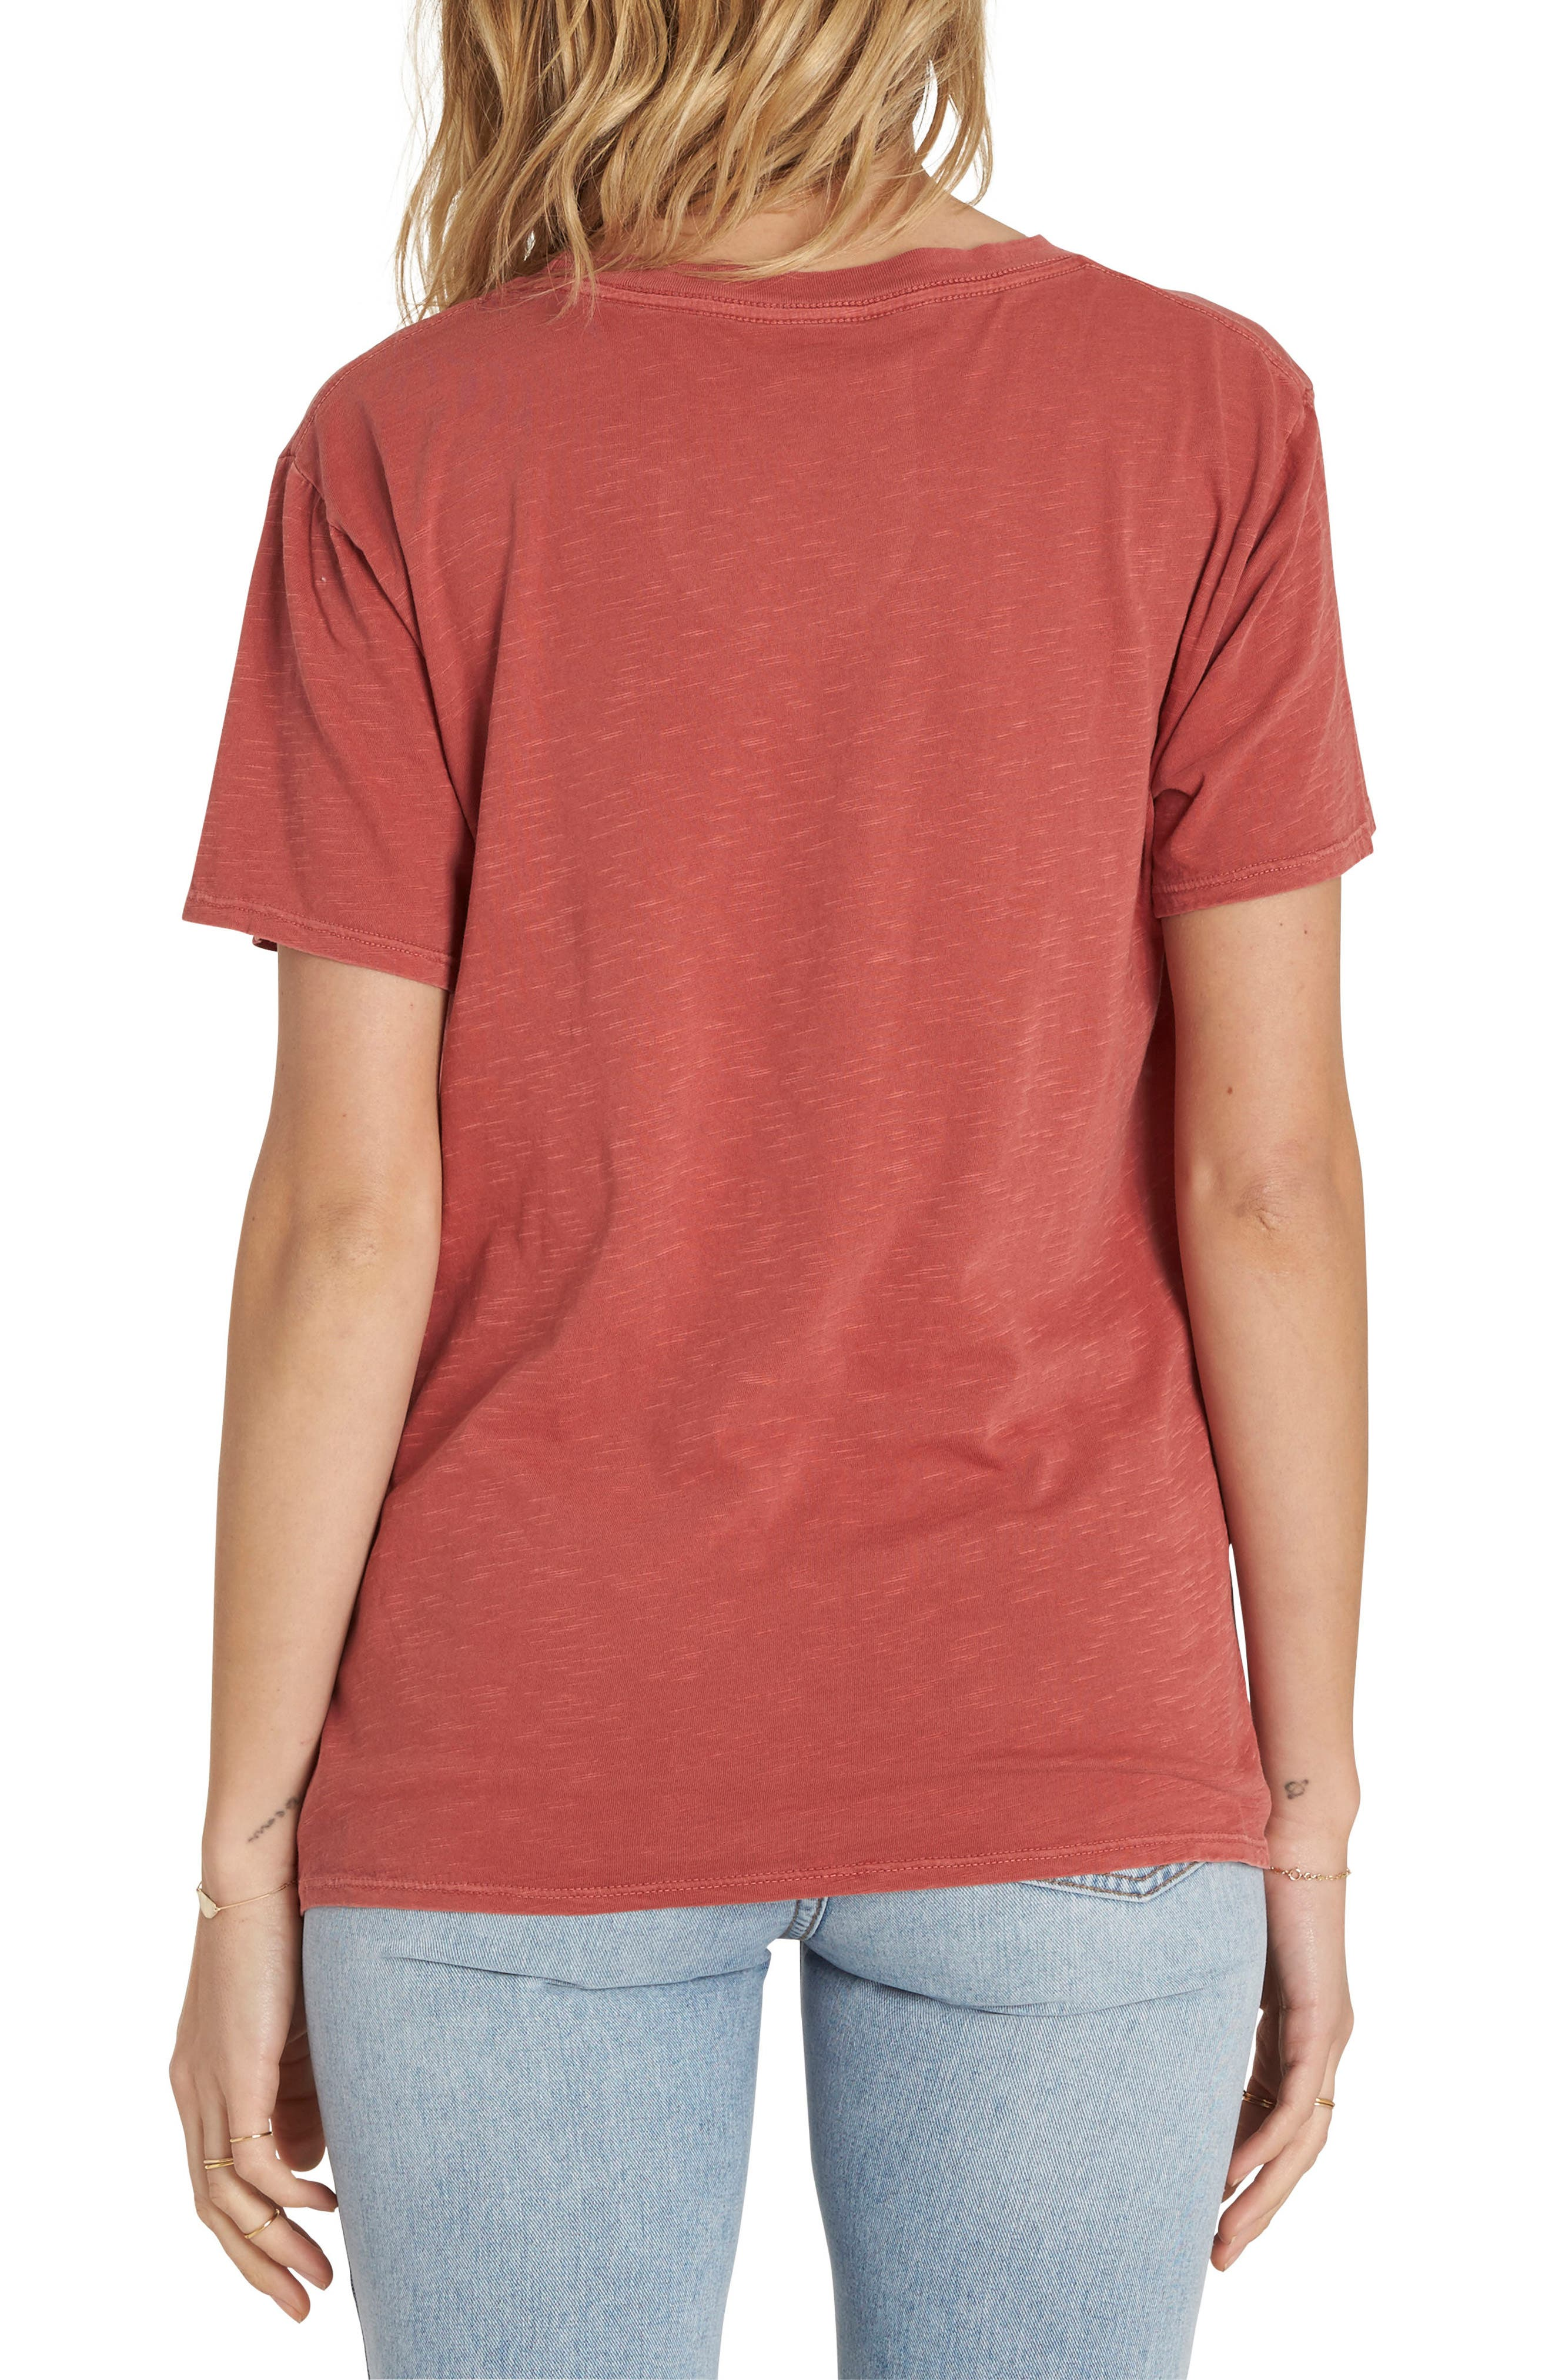 Sunset In the West Graphic Tee,                             Alternate thumbnail 2, color,                             602